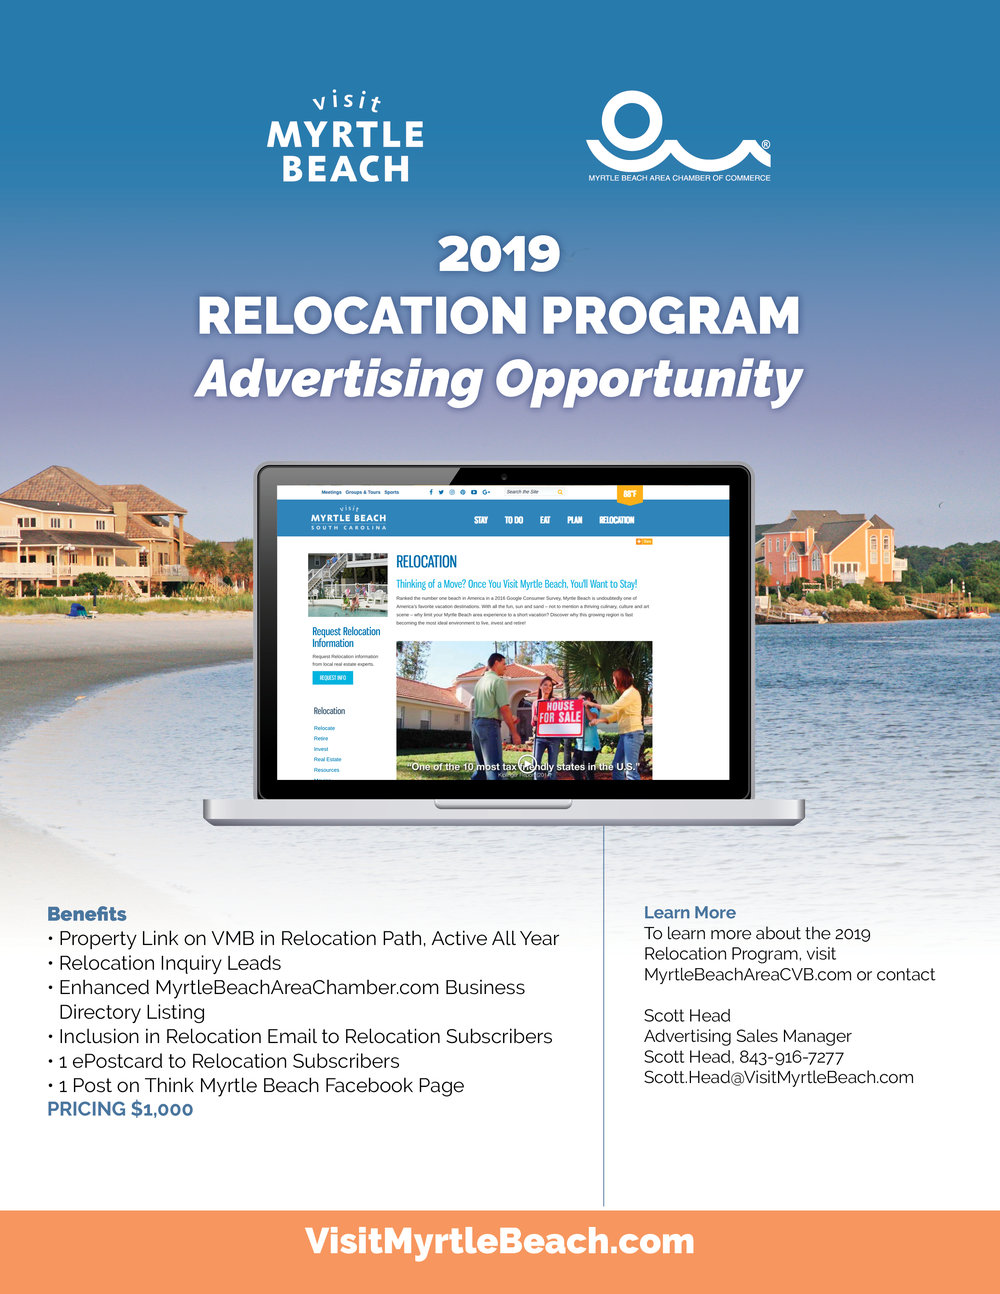 Relocation Advertising - Learn MoreTo learn more about the 2019Relocation Program, visit MyrtleBeachAreaCVB.com or contact Scott Head at 843-916-7277. Scott will be happy to review the program options and answer any questions you may have